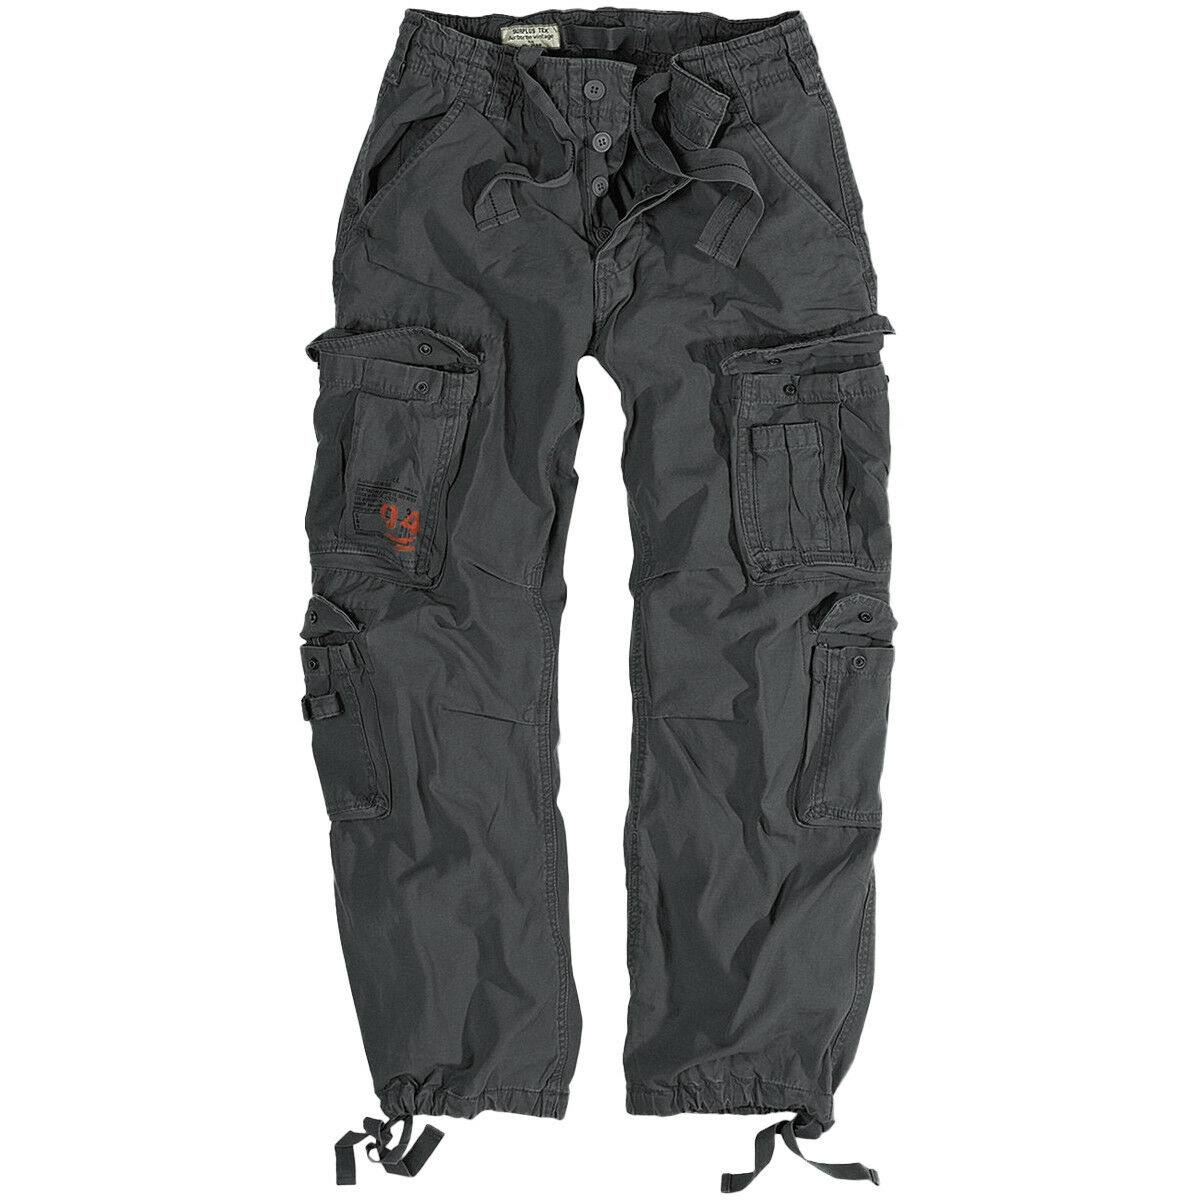 Surplus Airborne Vintage Trousers Mens Cotton Cargo Combat Trousers Anthracite